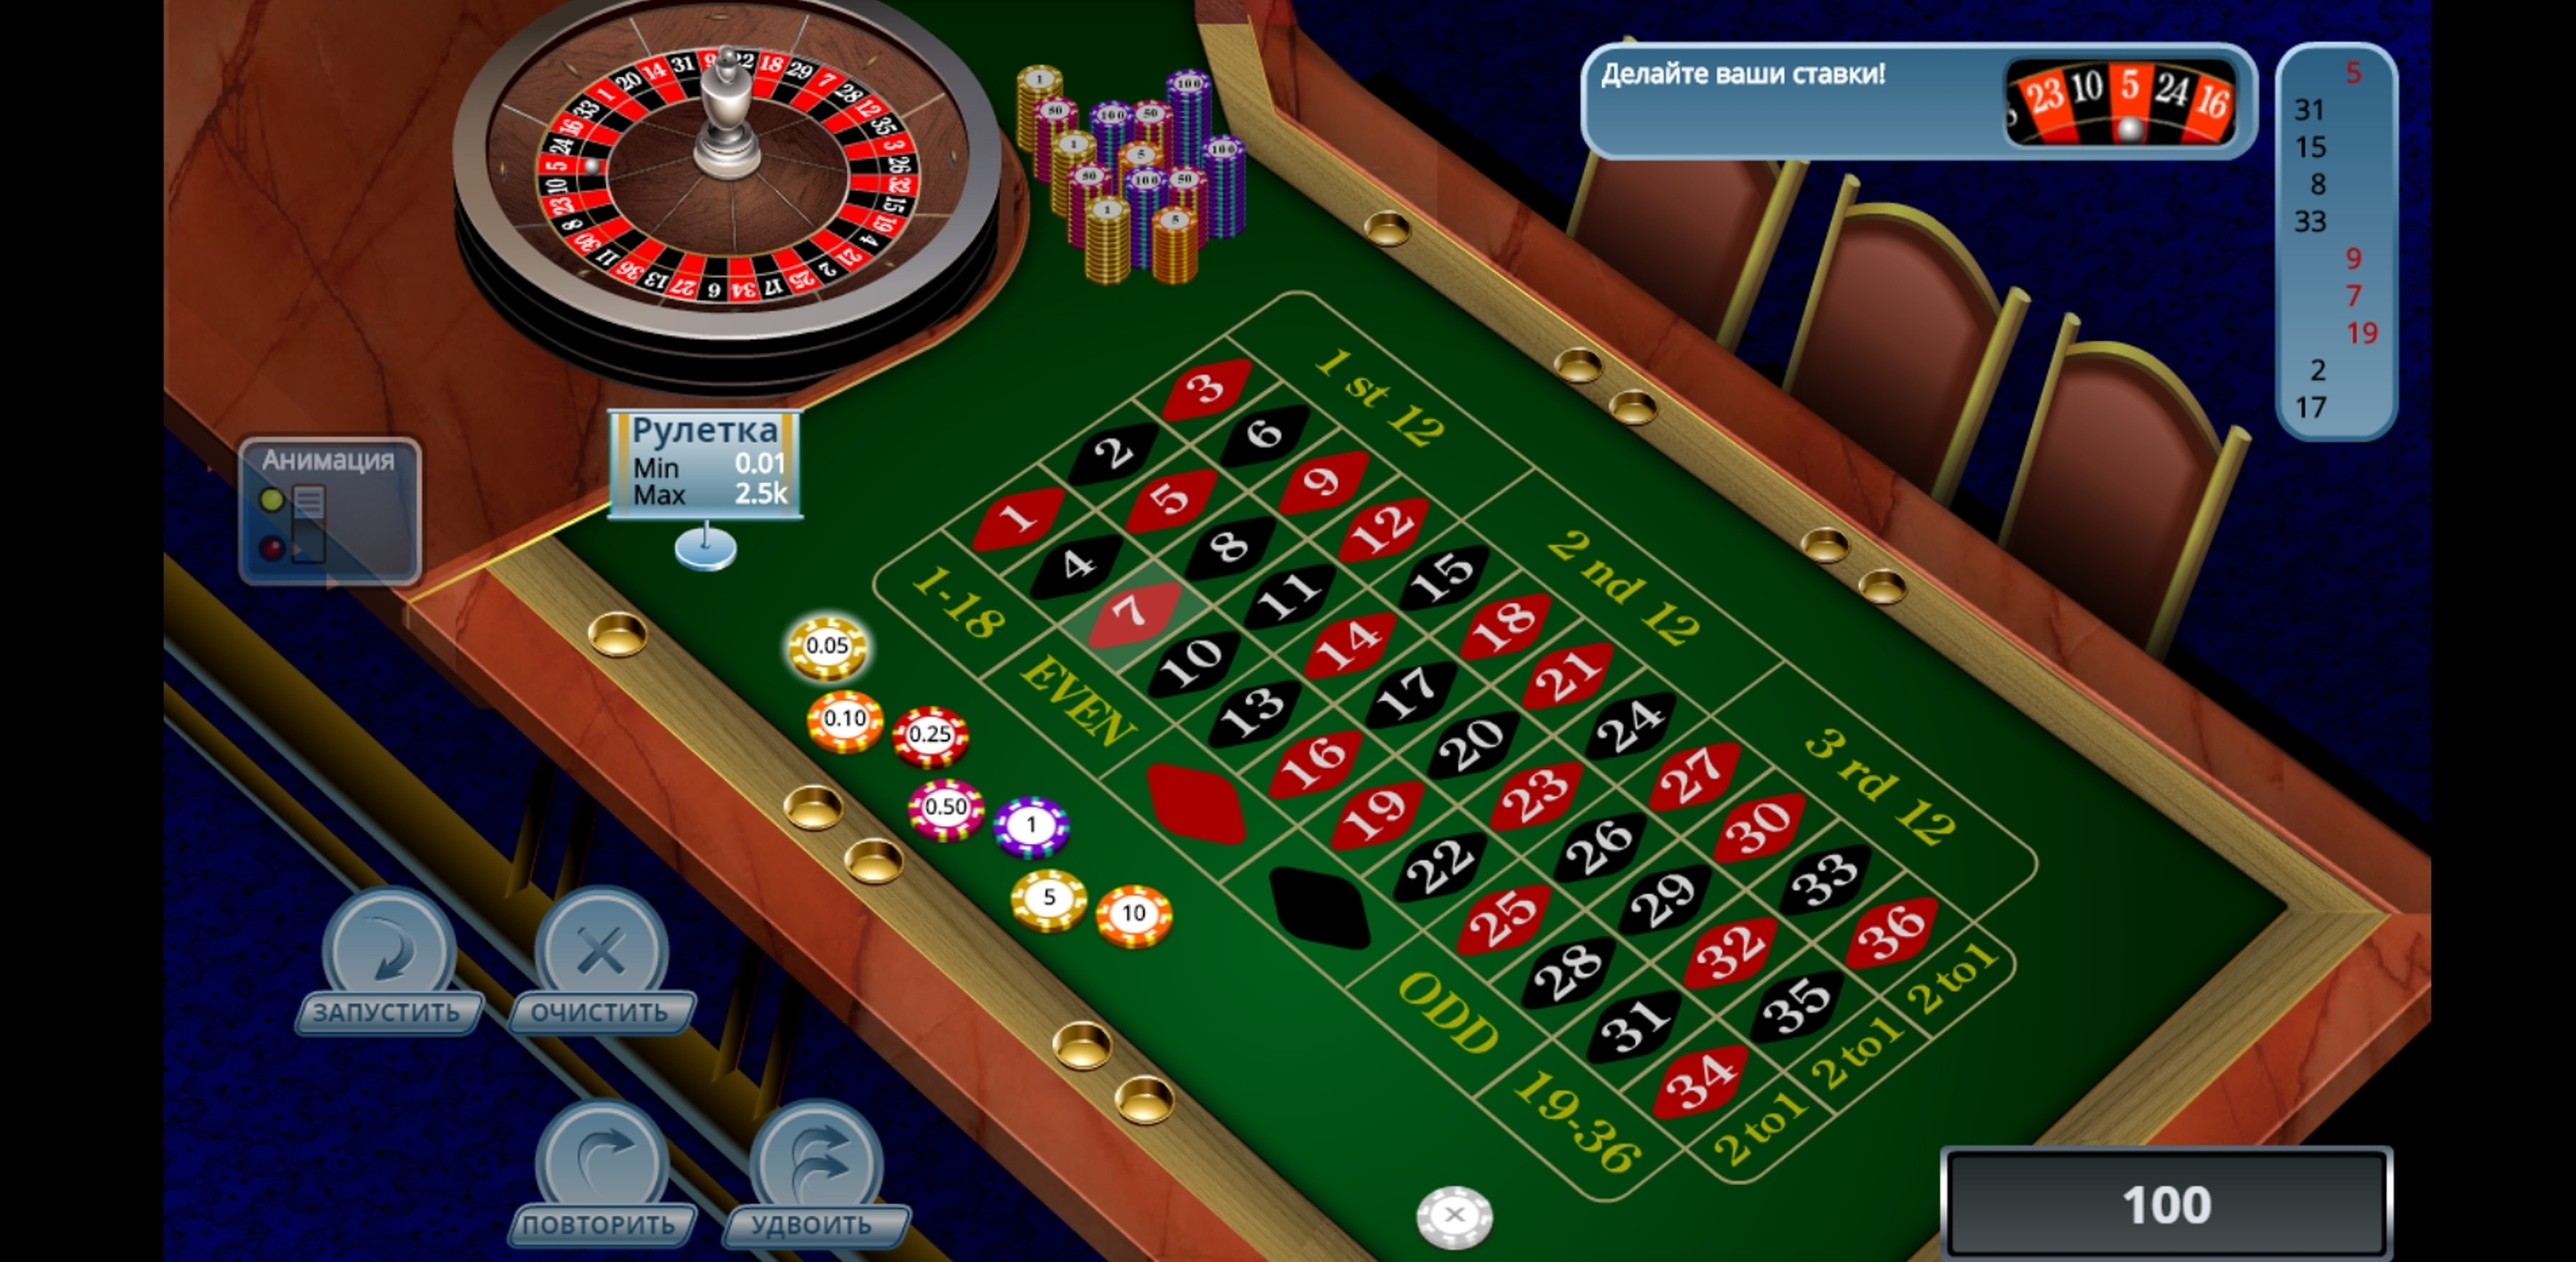 Reels in No Zero Roulette Slot Game by Novomatic